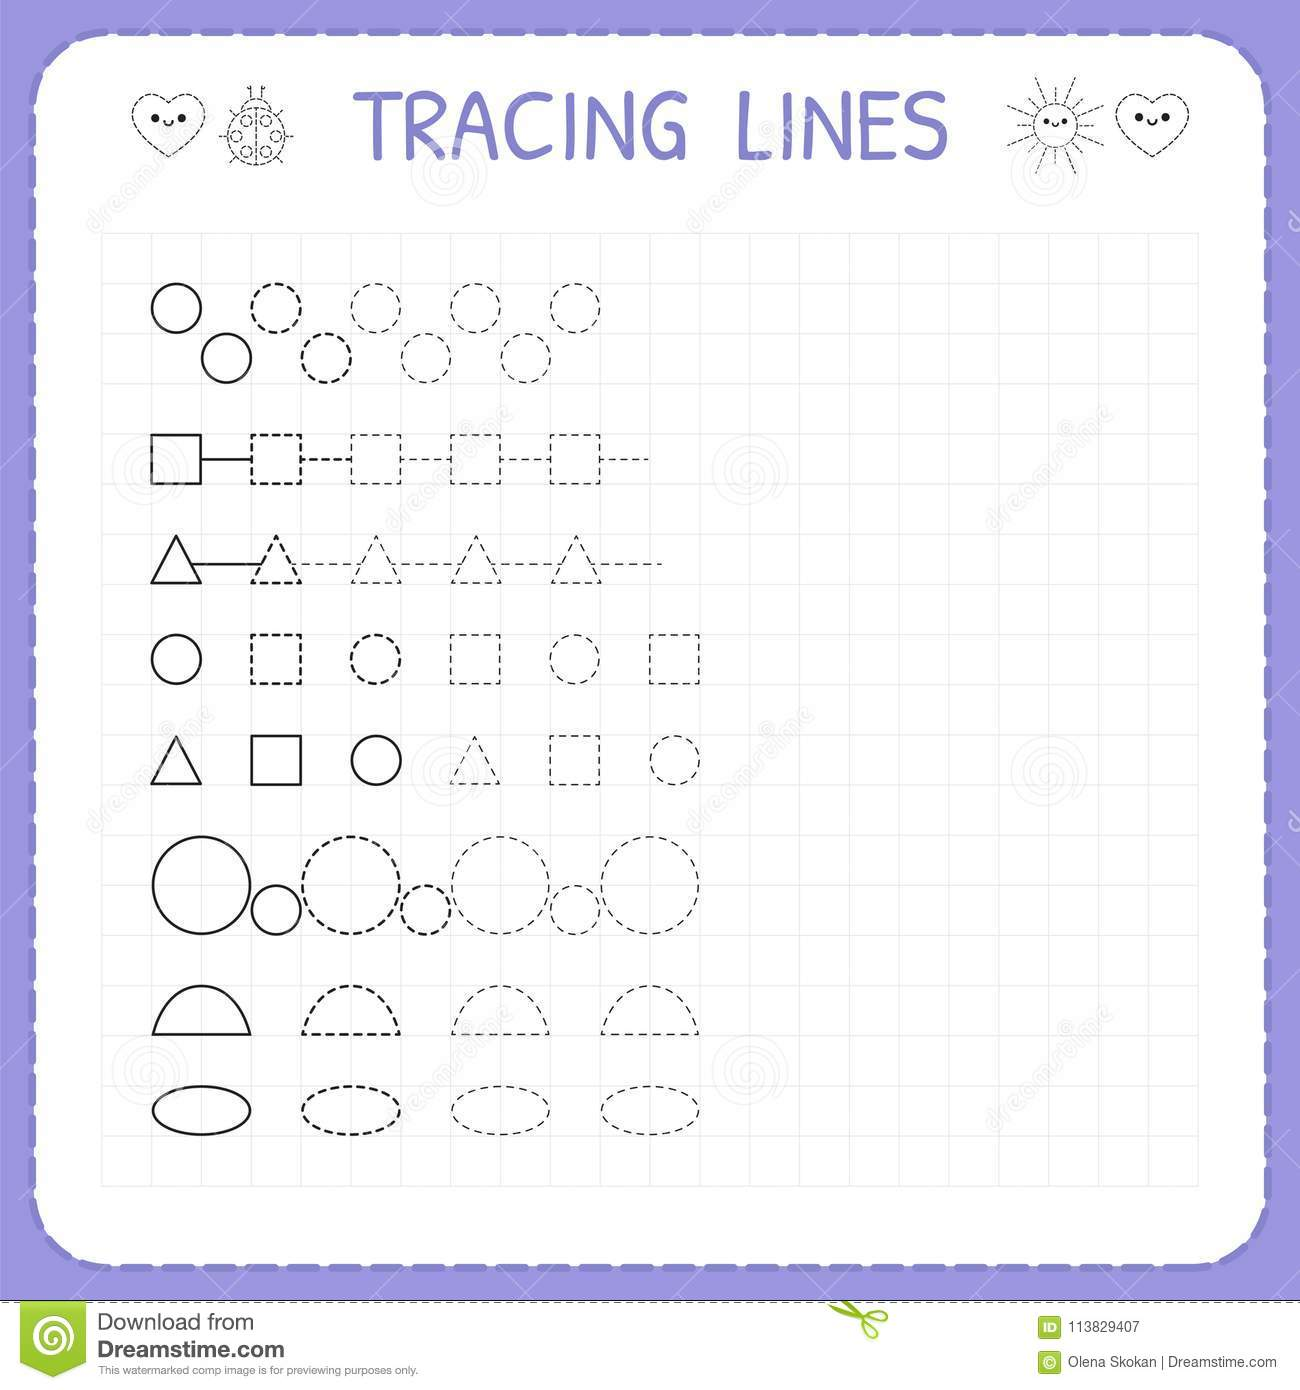 Tracing Lines. Worksheet For Kids. Working Pages For Children. Trace ...